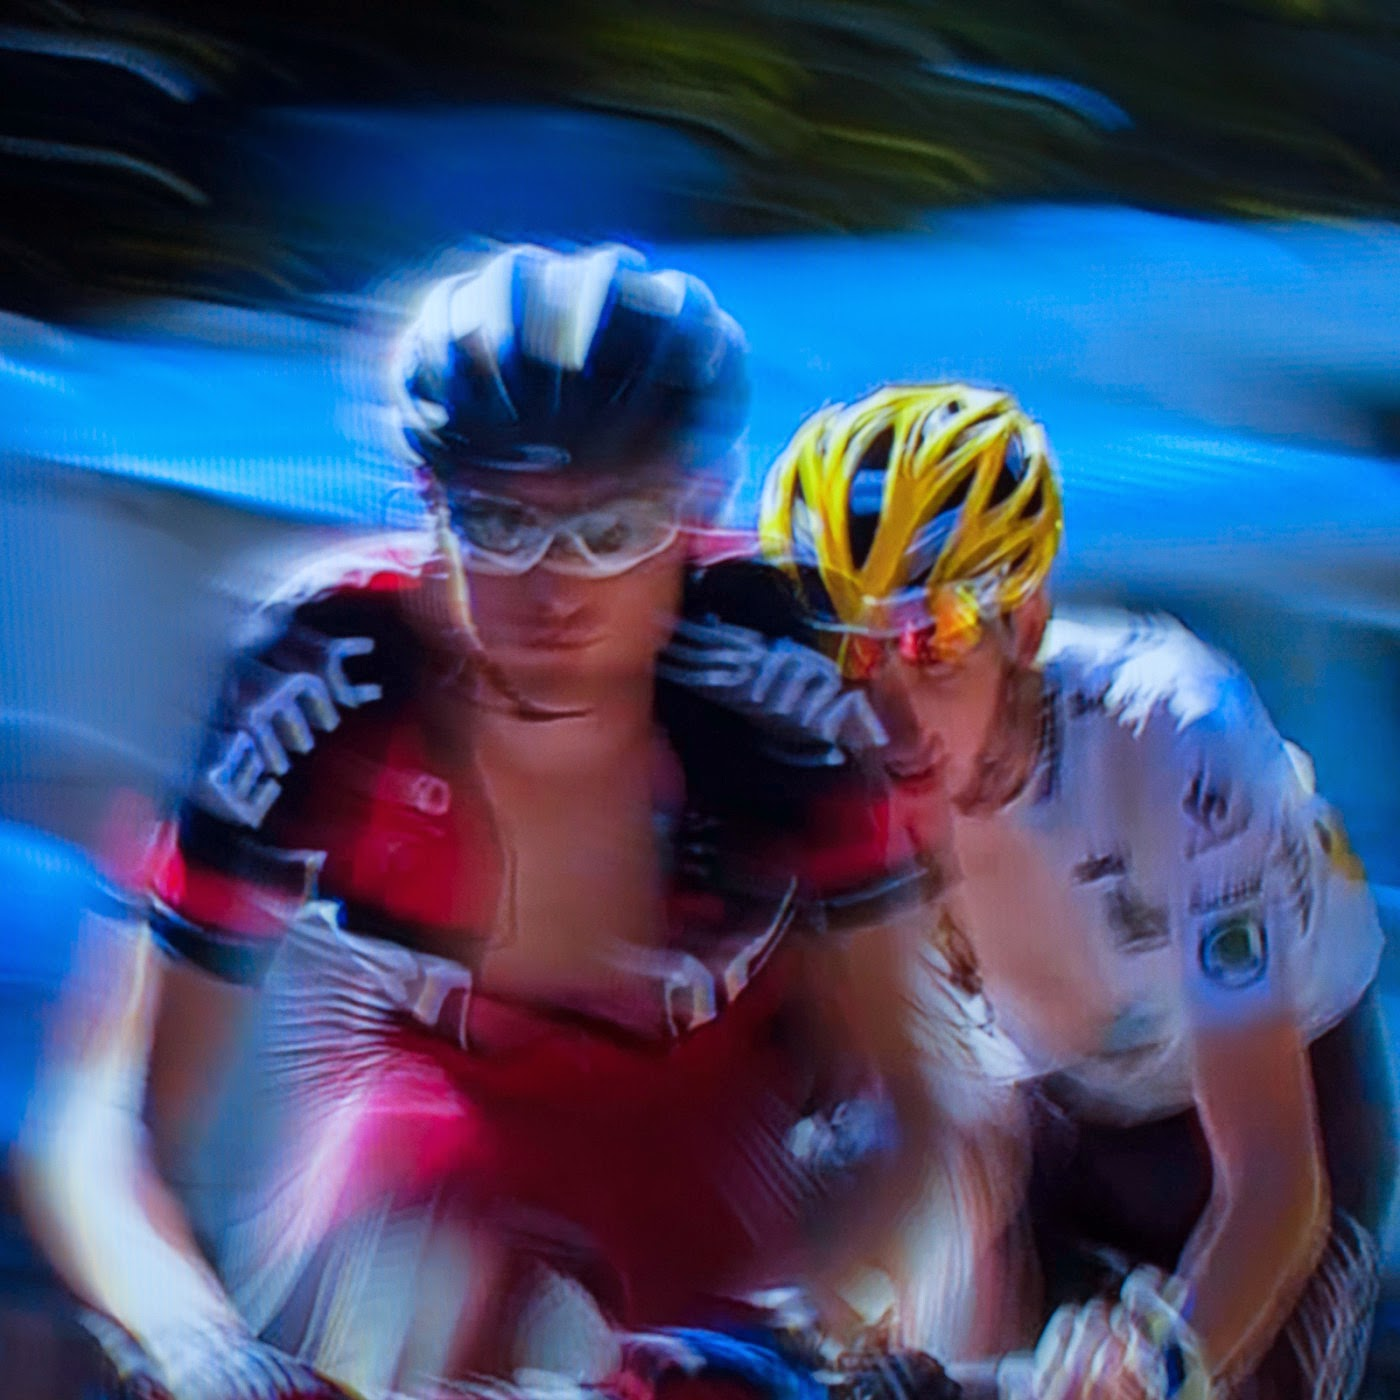 le tour, motion blur, blur, abstract, abstraction, tim macauley, photographic art, you won't see this at MoMA, appropriation, found imagery, le tour 2014, tv footage, portrait, team BMC Racing